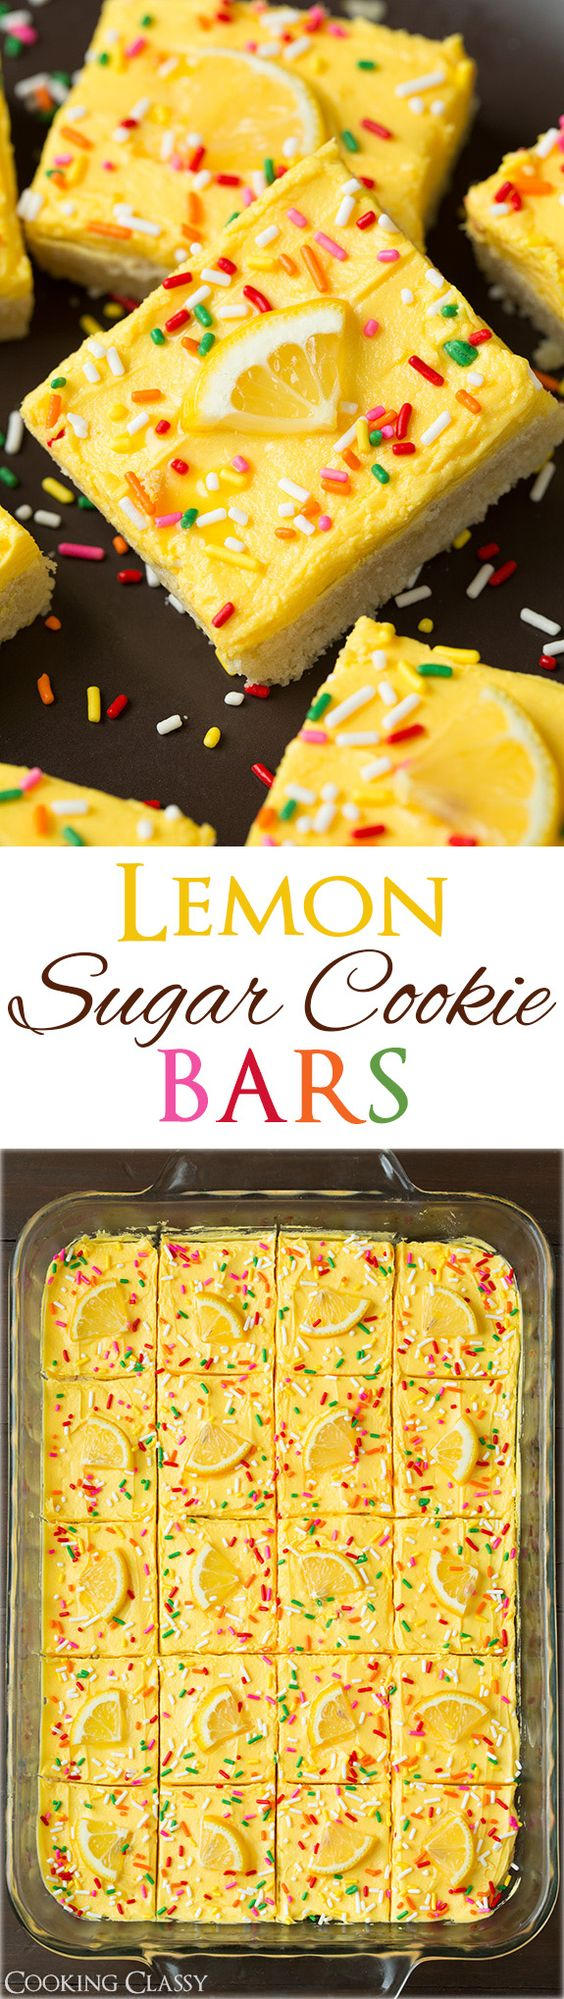 Lemon Sugar Cookie Dessert Bars Recipe via Cooking Classy - these are one of the BEST summer treats! They are so lemony and refreshing and they are as soft as lofthouse cookies.